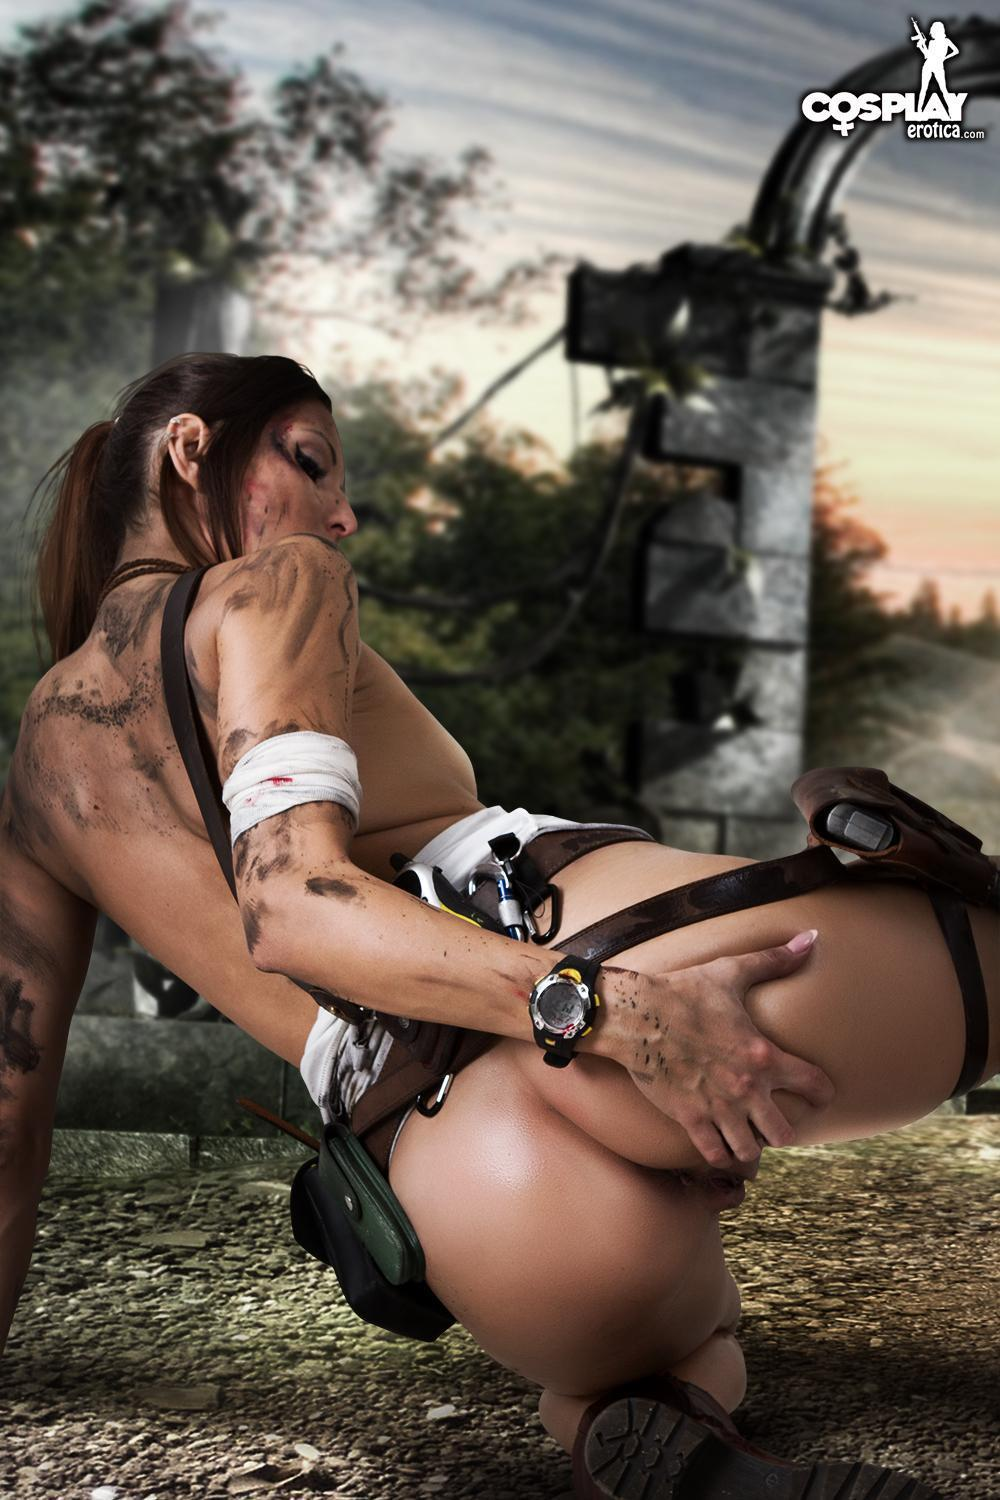 Lara croft 2013 erotic xxx film